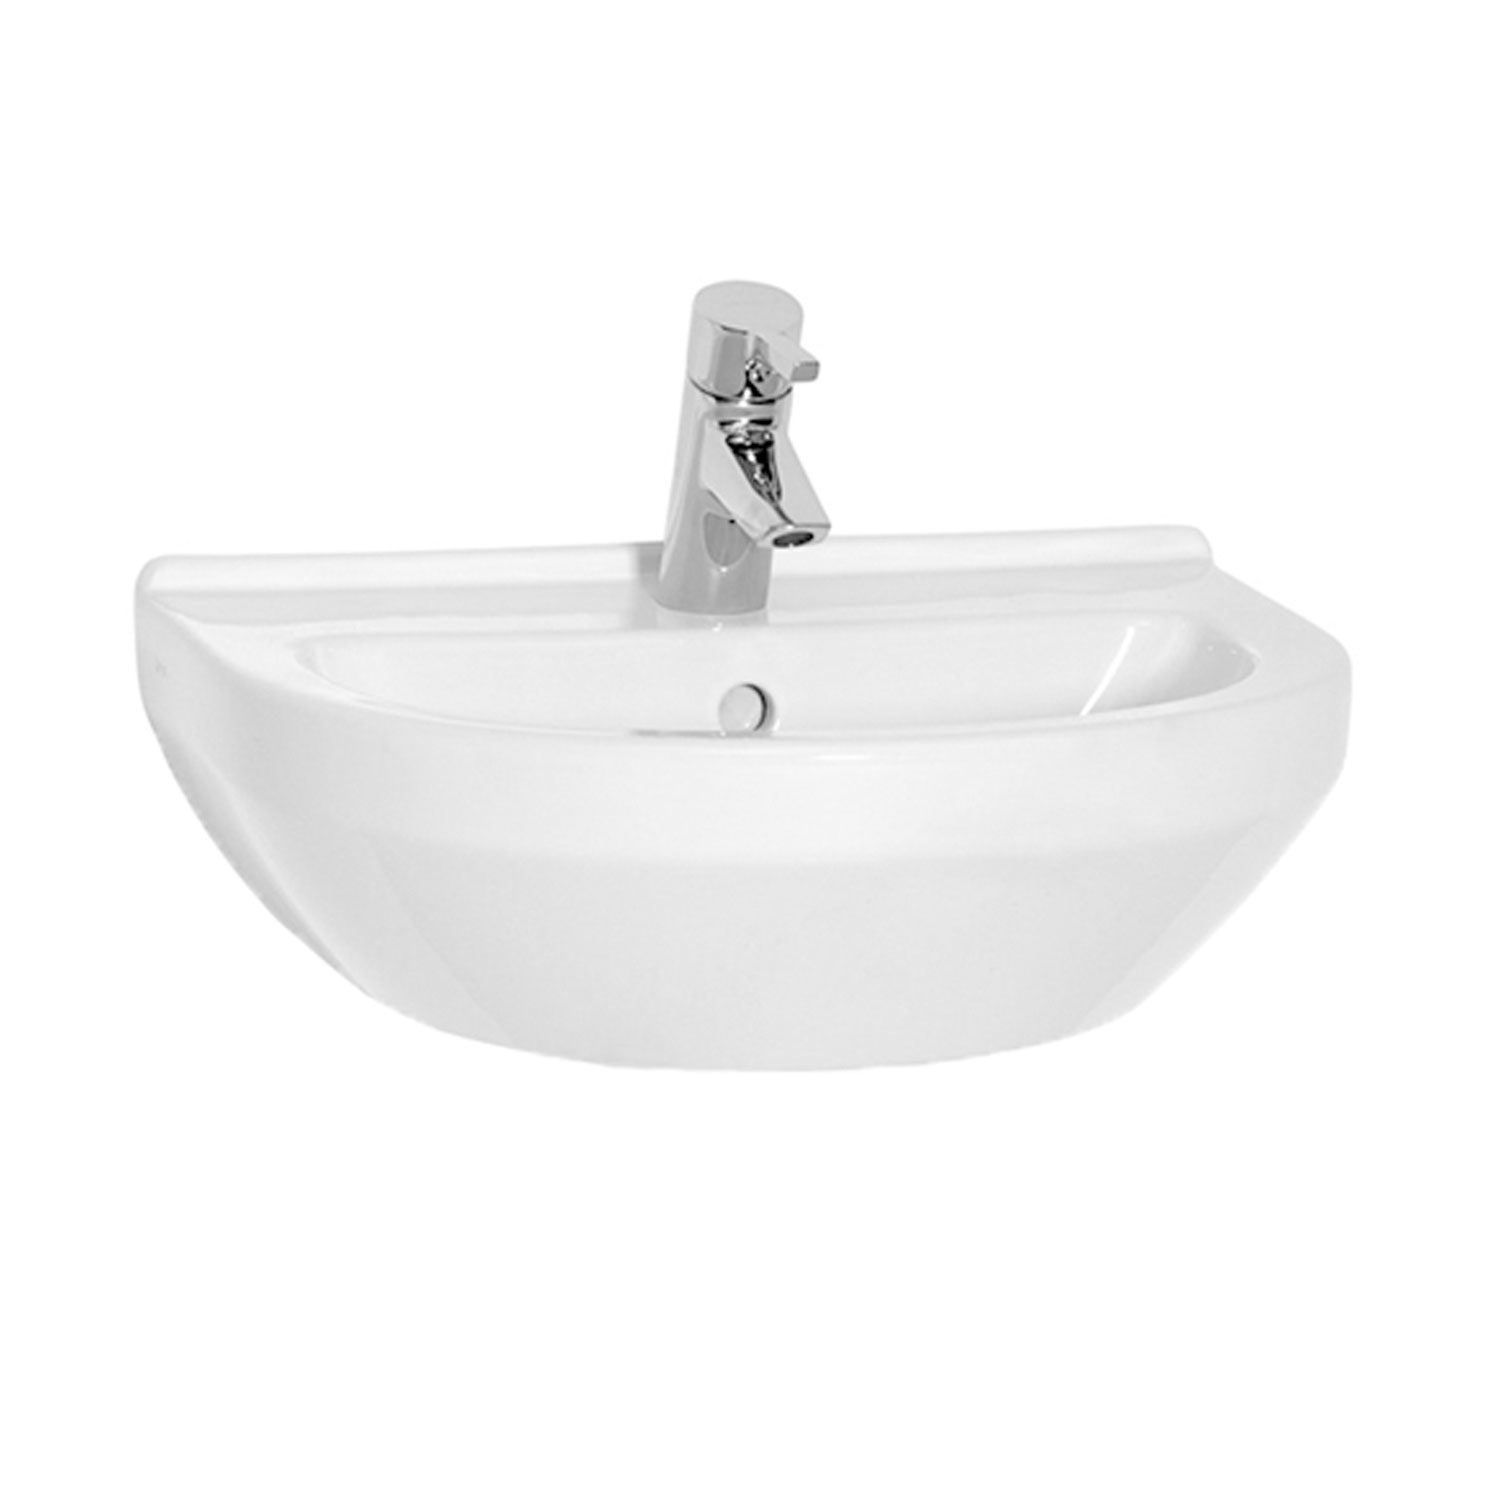 Vitra S50 Round Basin & Full Pedestal 650mm Wide 1 Tap Hole-0